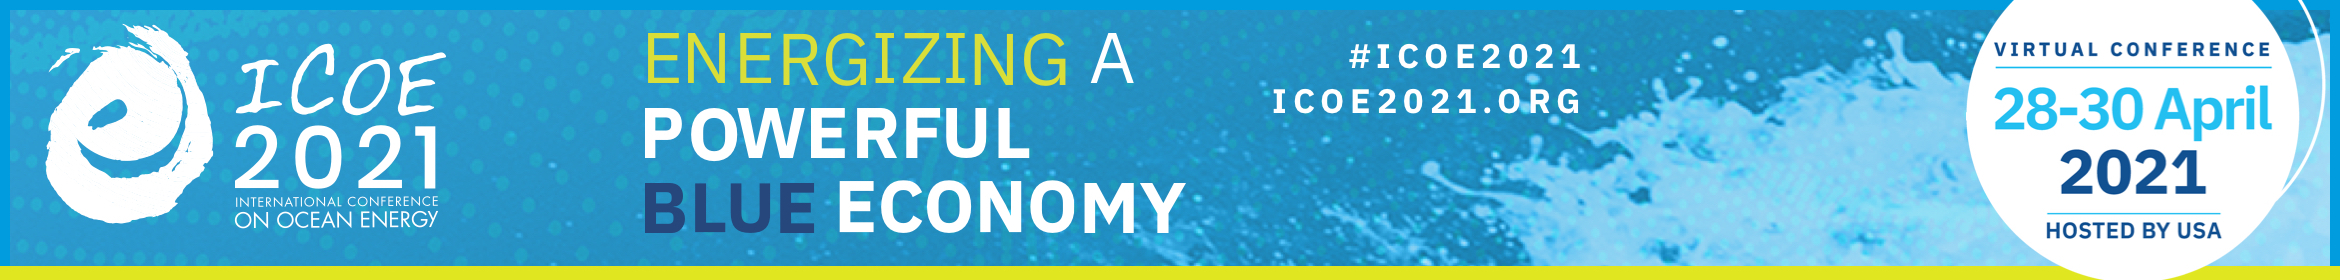 ICOE 2021 - International Conference on Ocean Energy Main banner